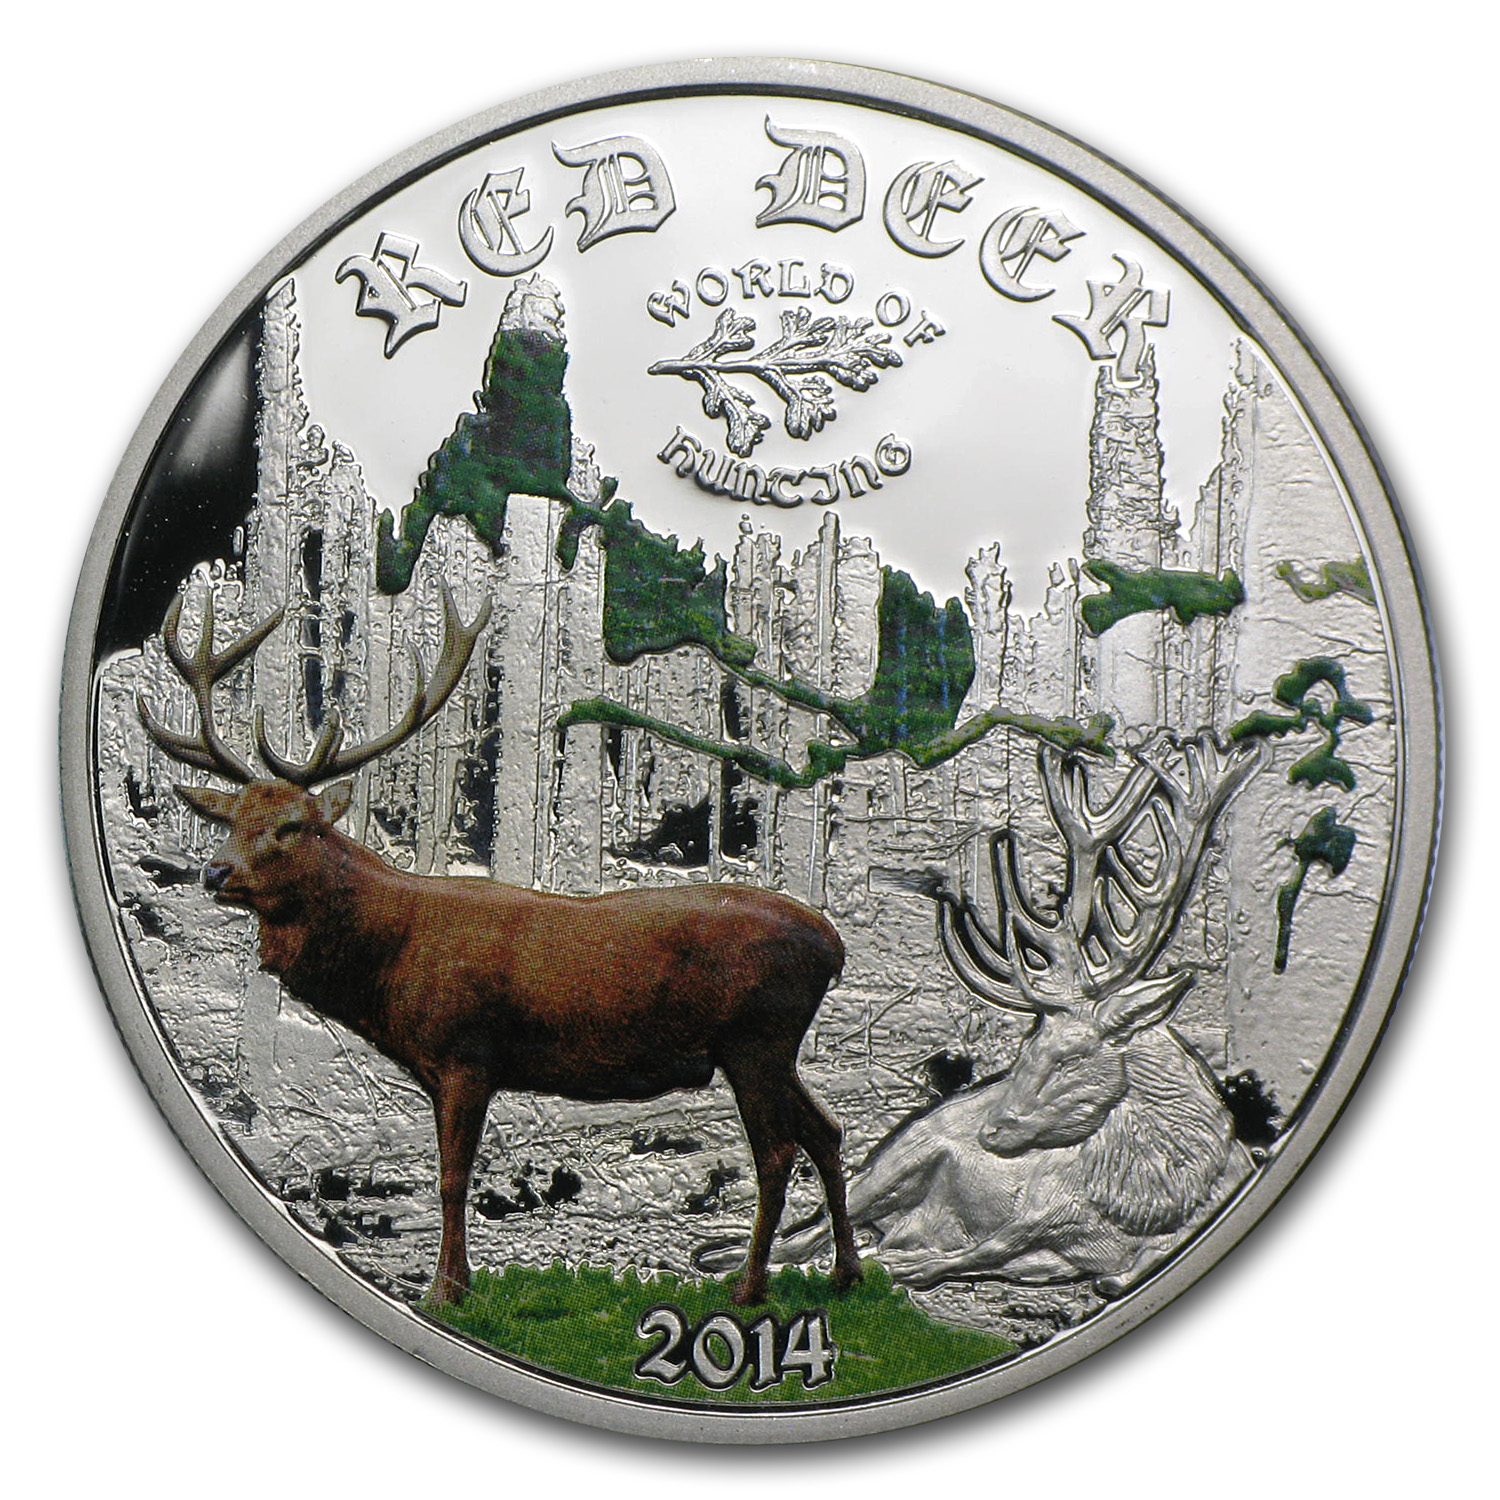 2014 Cook Islands 1/2 oz Proof Silver World of Hunting Red Deer